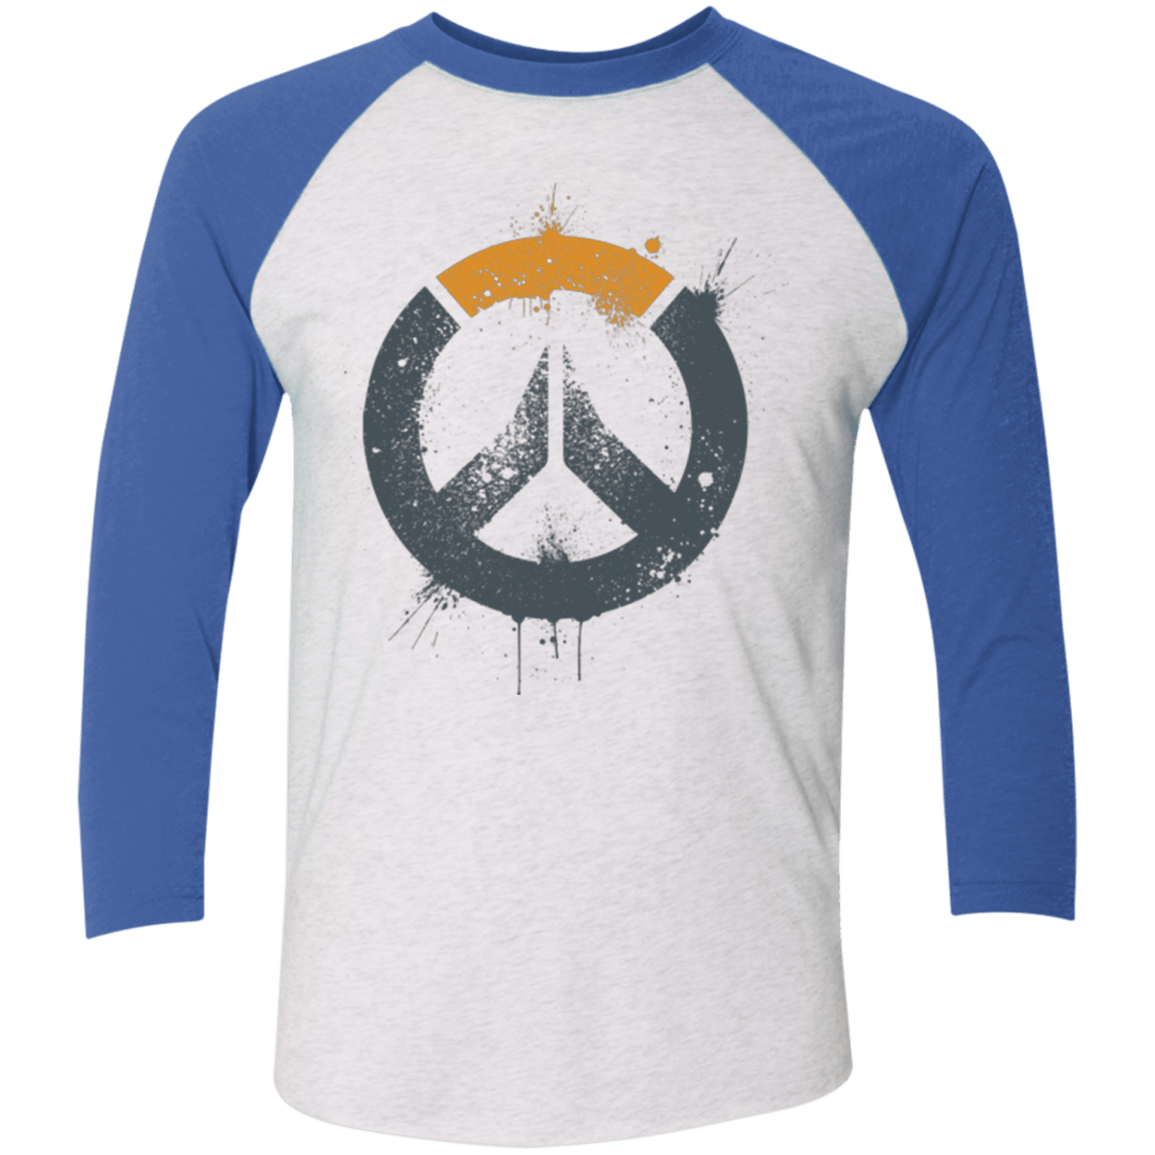 T-Shirts Heather White/Vintage Royal / X-Small Overwatch Triblend 3/4 Sleeve